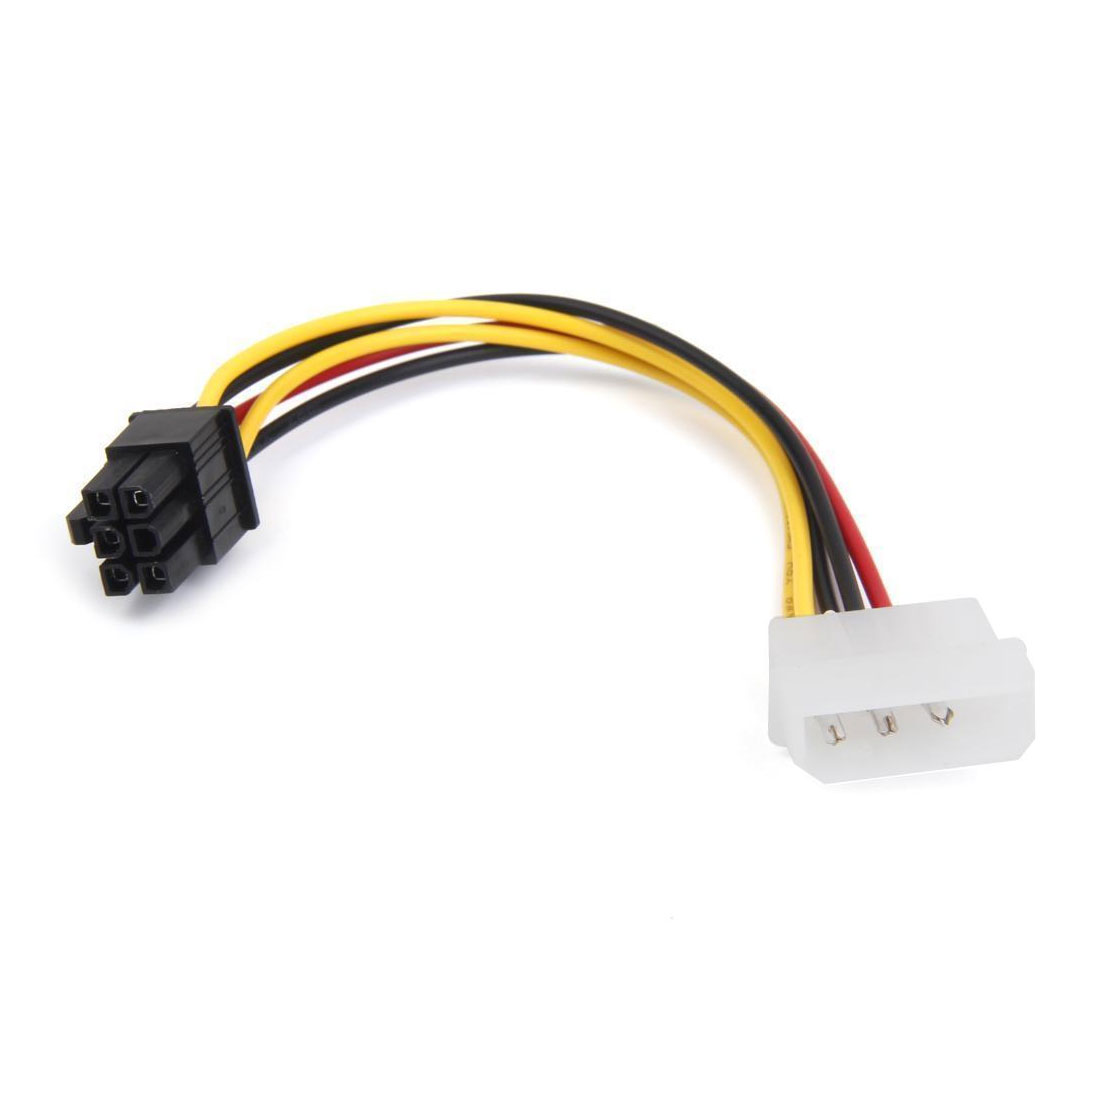 Image 2 - PVC 4 Pin Molex to 6 Pin PCI Express PCIE Video Card Power Converter Adapter Cable 20cm Power Converter Adapter Cable-in Computer Cables & Connectors from Computer & Office